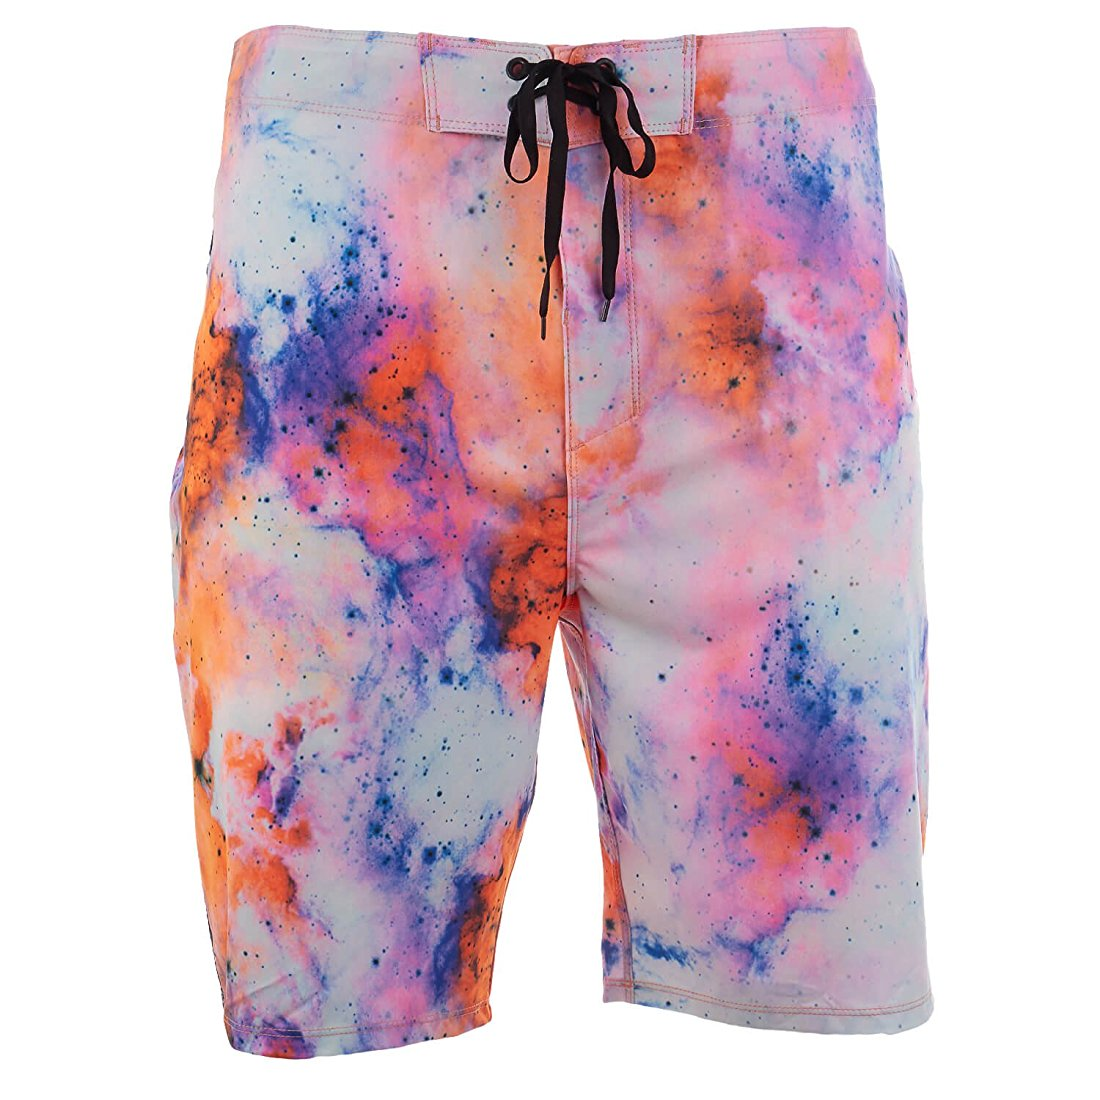 Hurley Men's Phantom JJF lll Nebula Swim Board Short